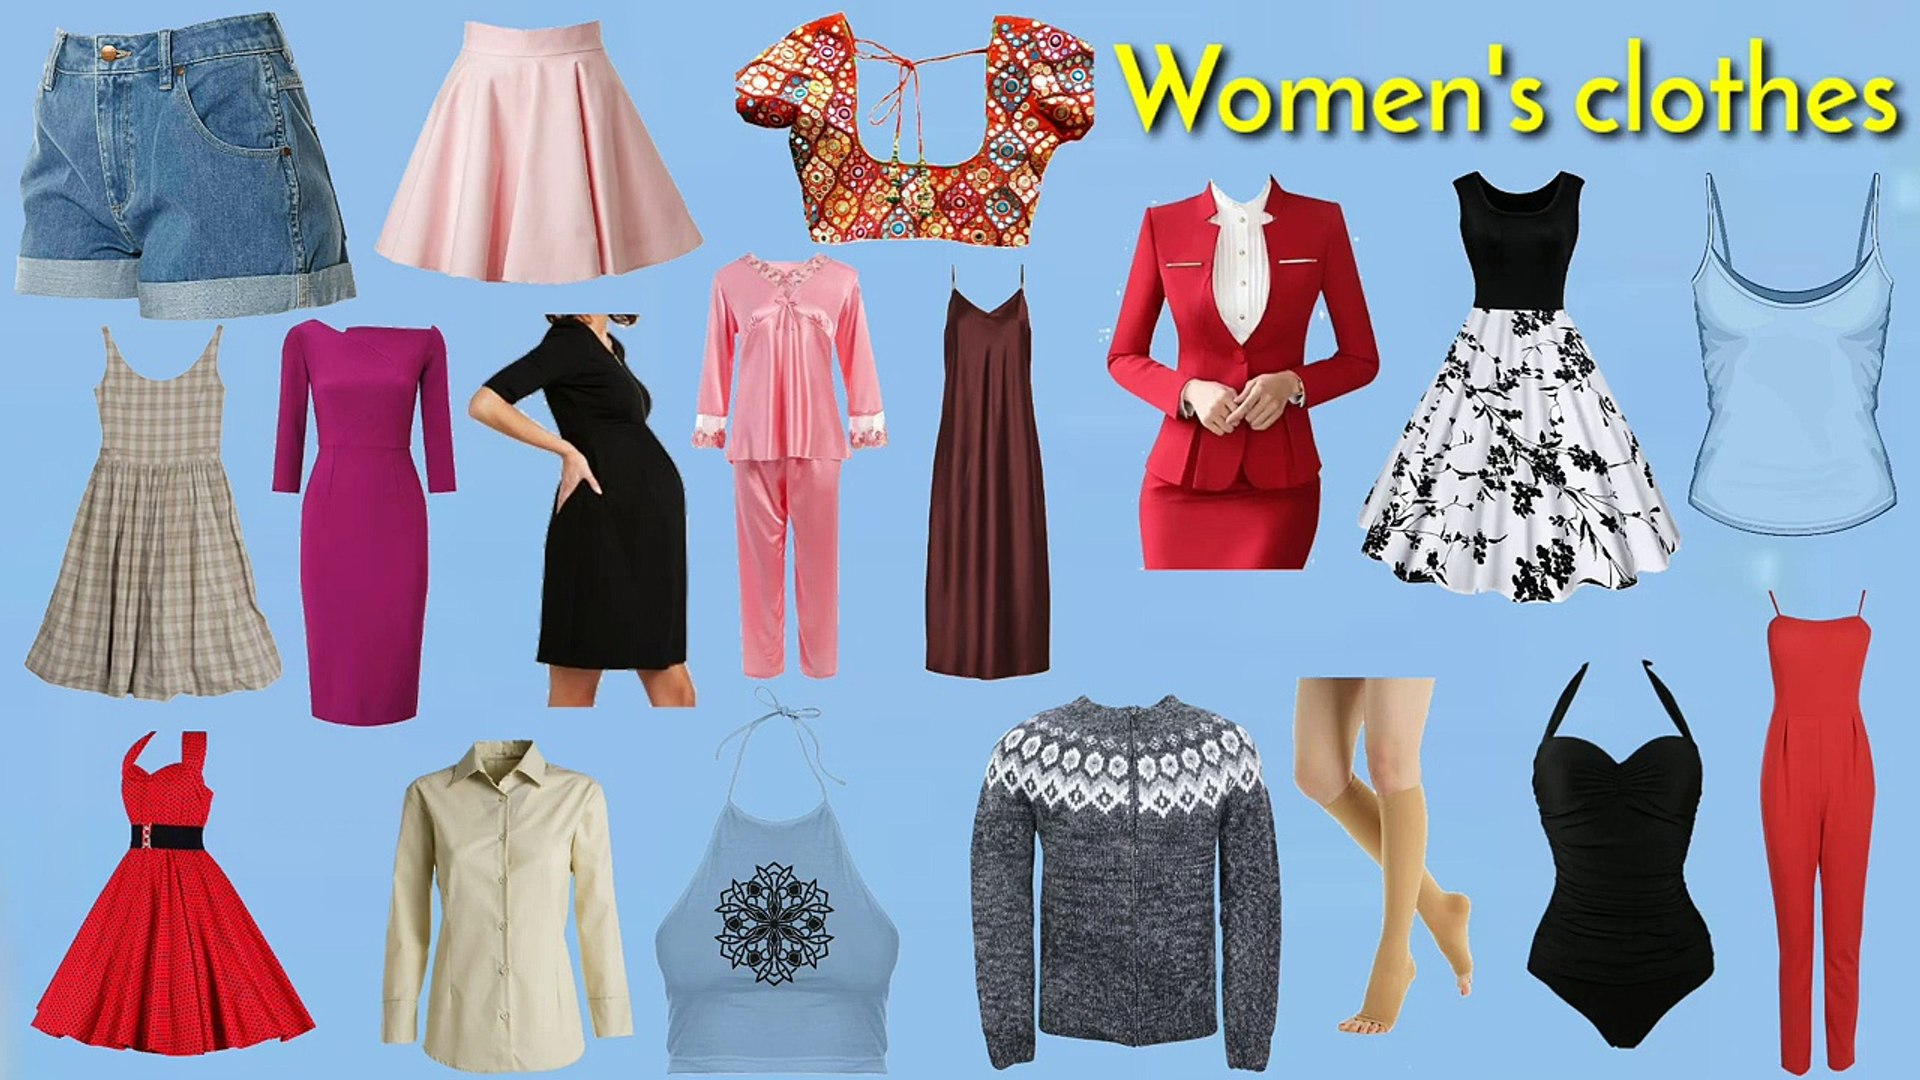 Clothes vocabulary _ Clothes in english _ Women's clothes vocabulary _ Easy engl